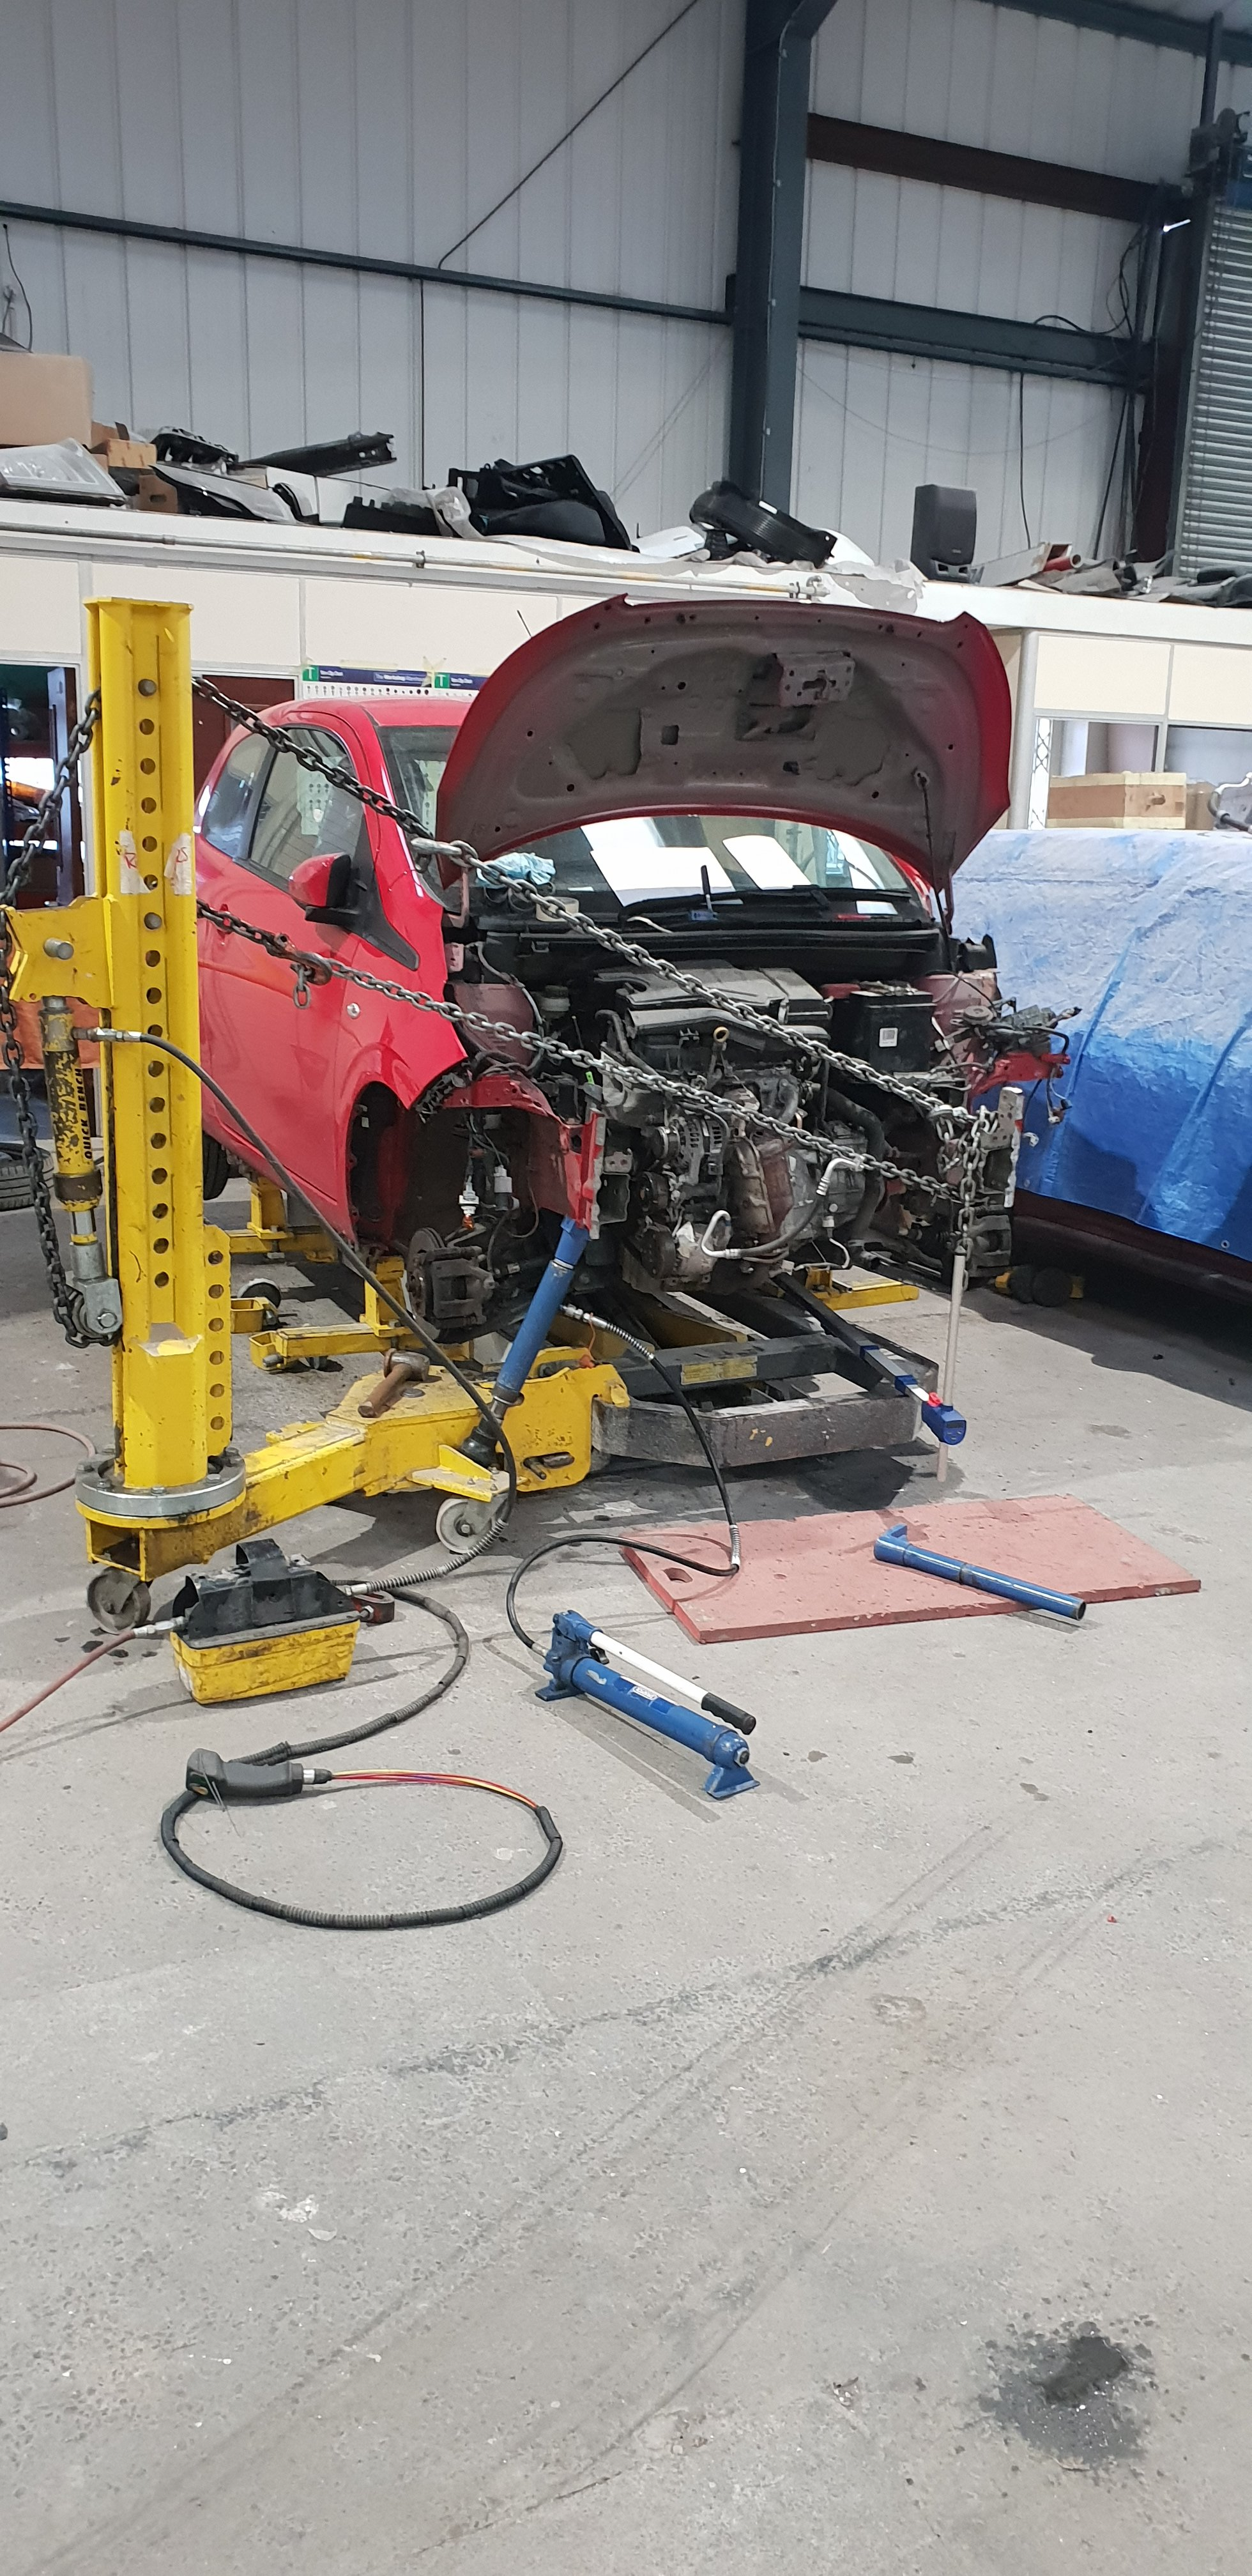 Repair and Restore Body Shop - (Goole) limited East Yorkshire